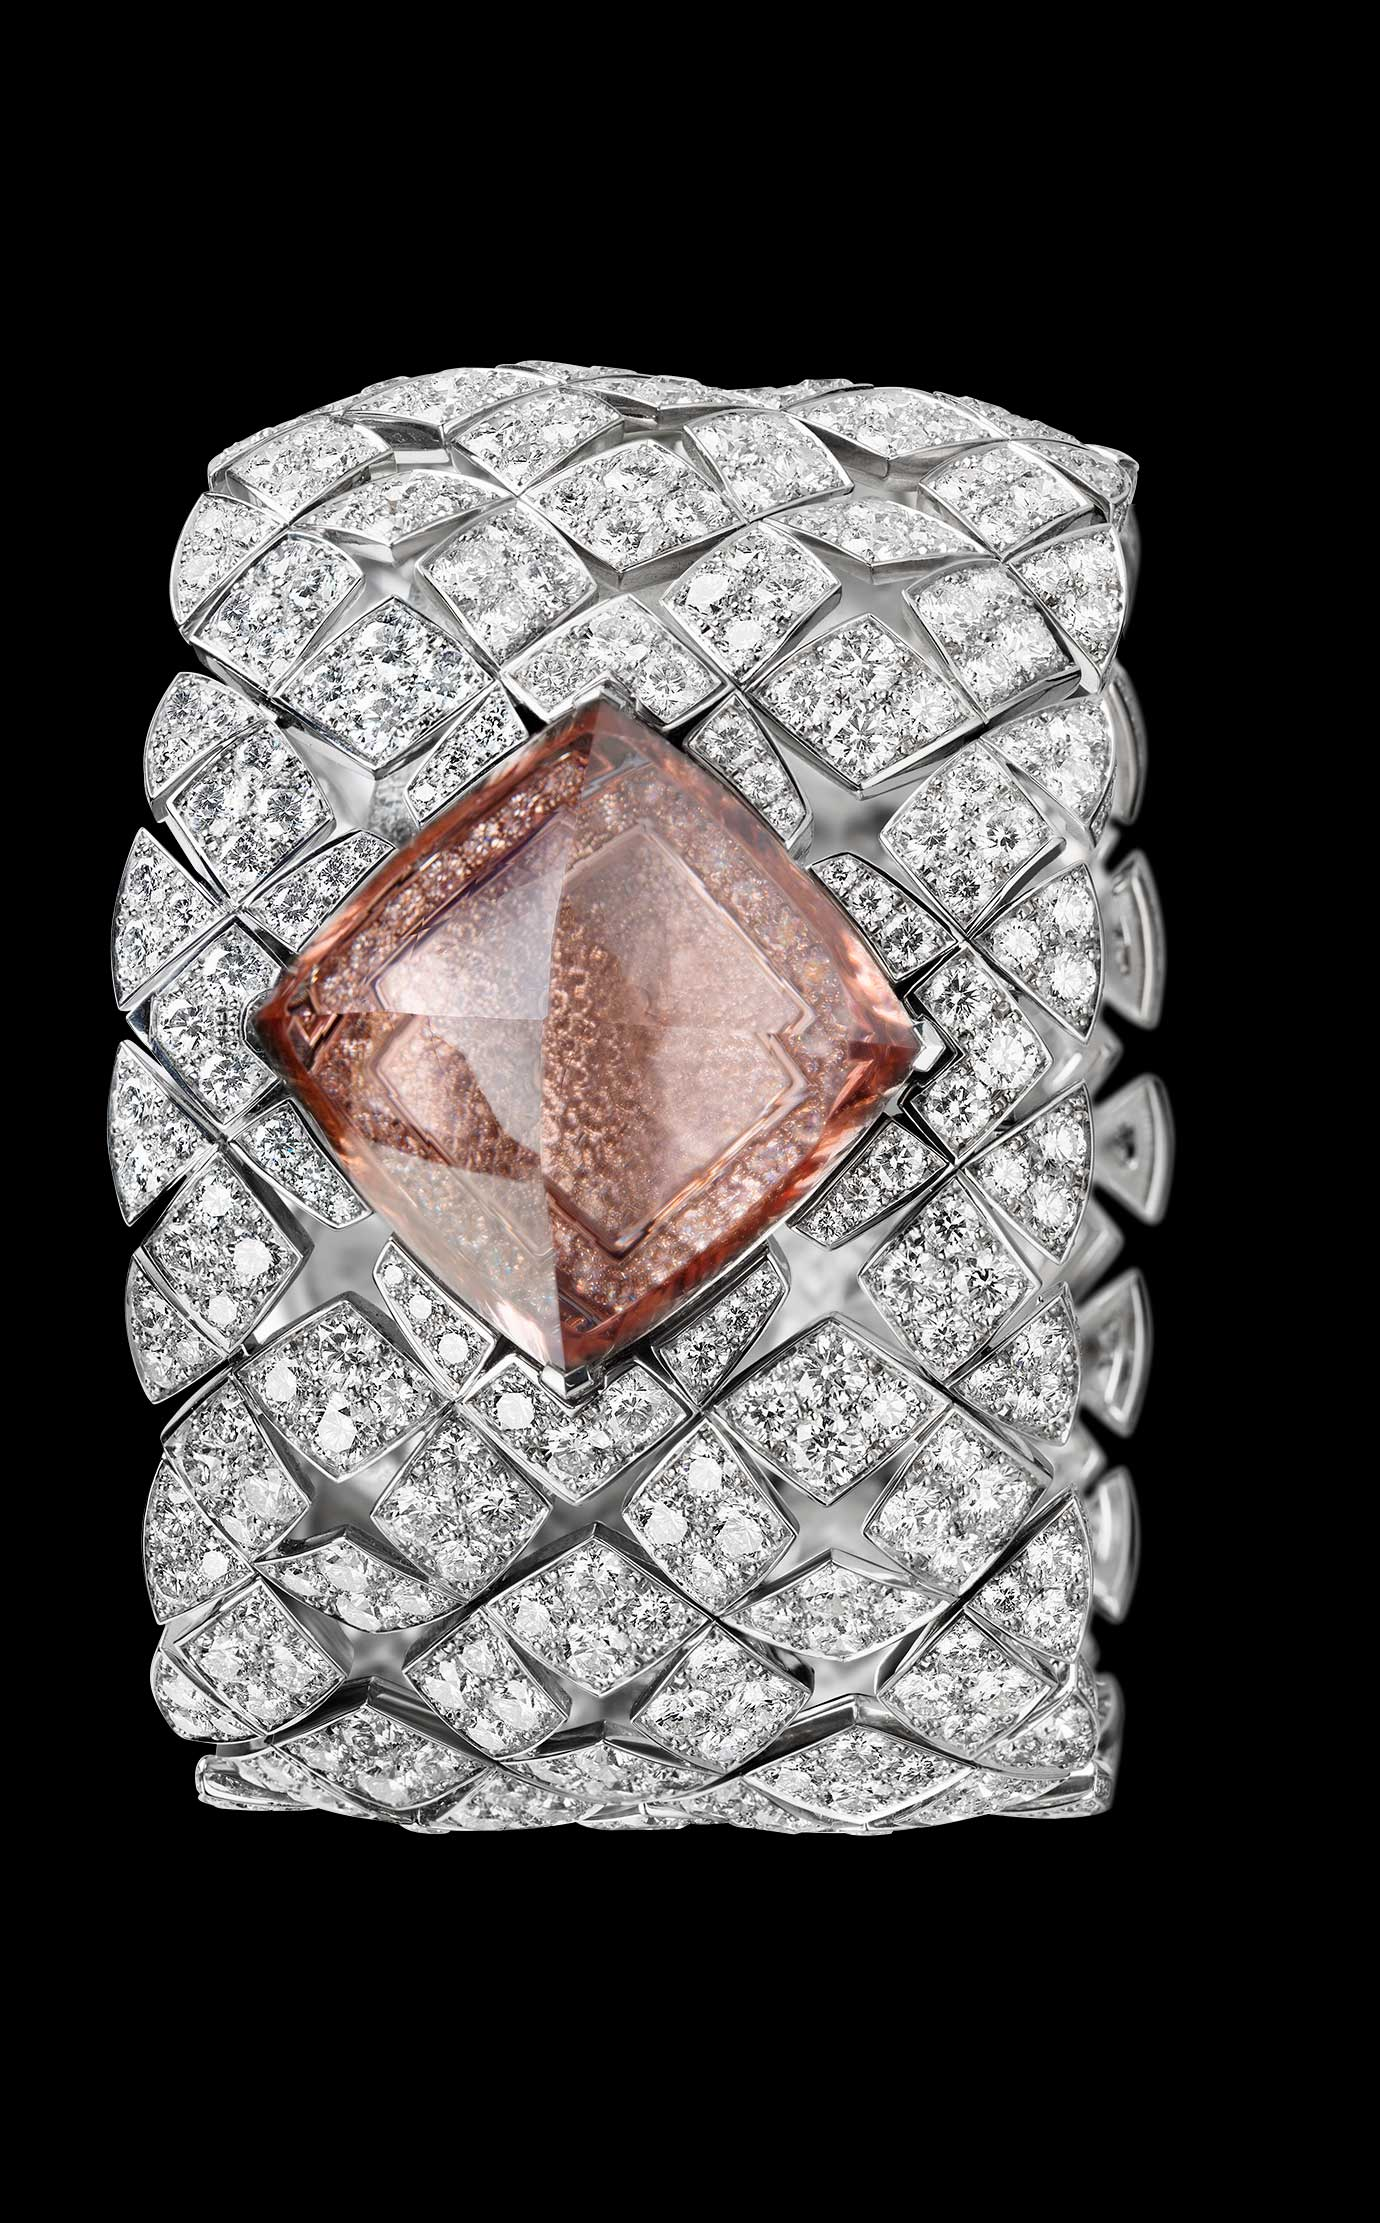 Les Eternelles de CHANEL. Secret cuff watch in 18K white gold. 43.64-carat pink morganite pyramid. - Closed - Enlarged view